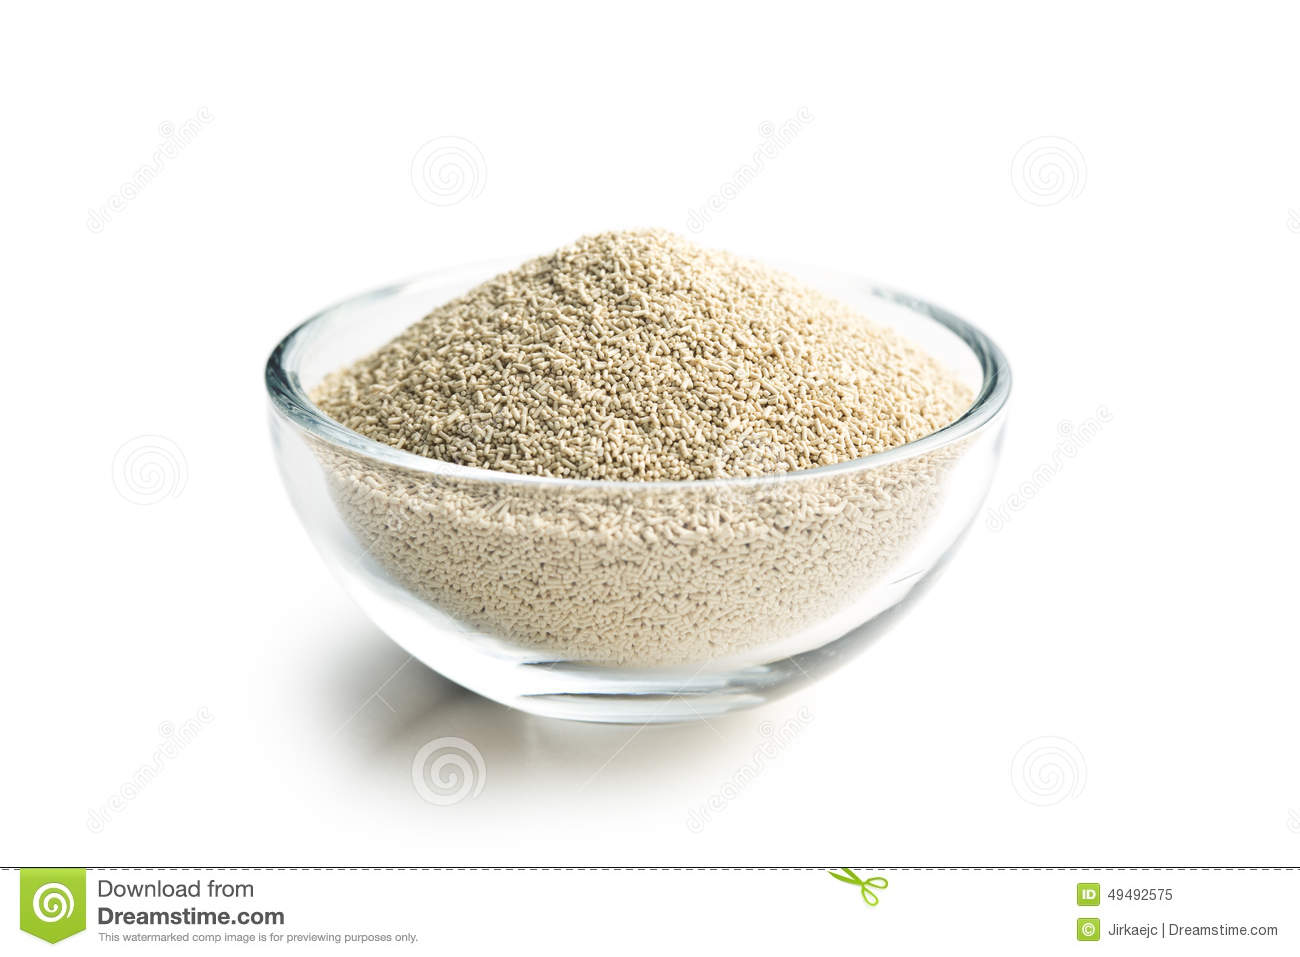 Yeast Cake Clipart : Dry Yeast In Bowl Stock Photo - Image: 49492575